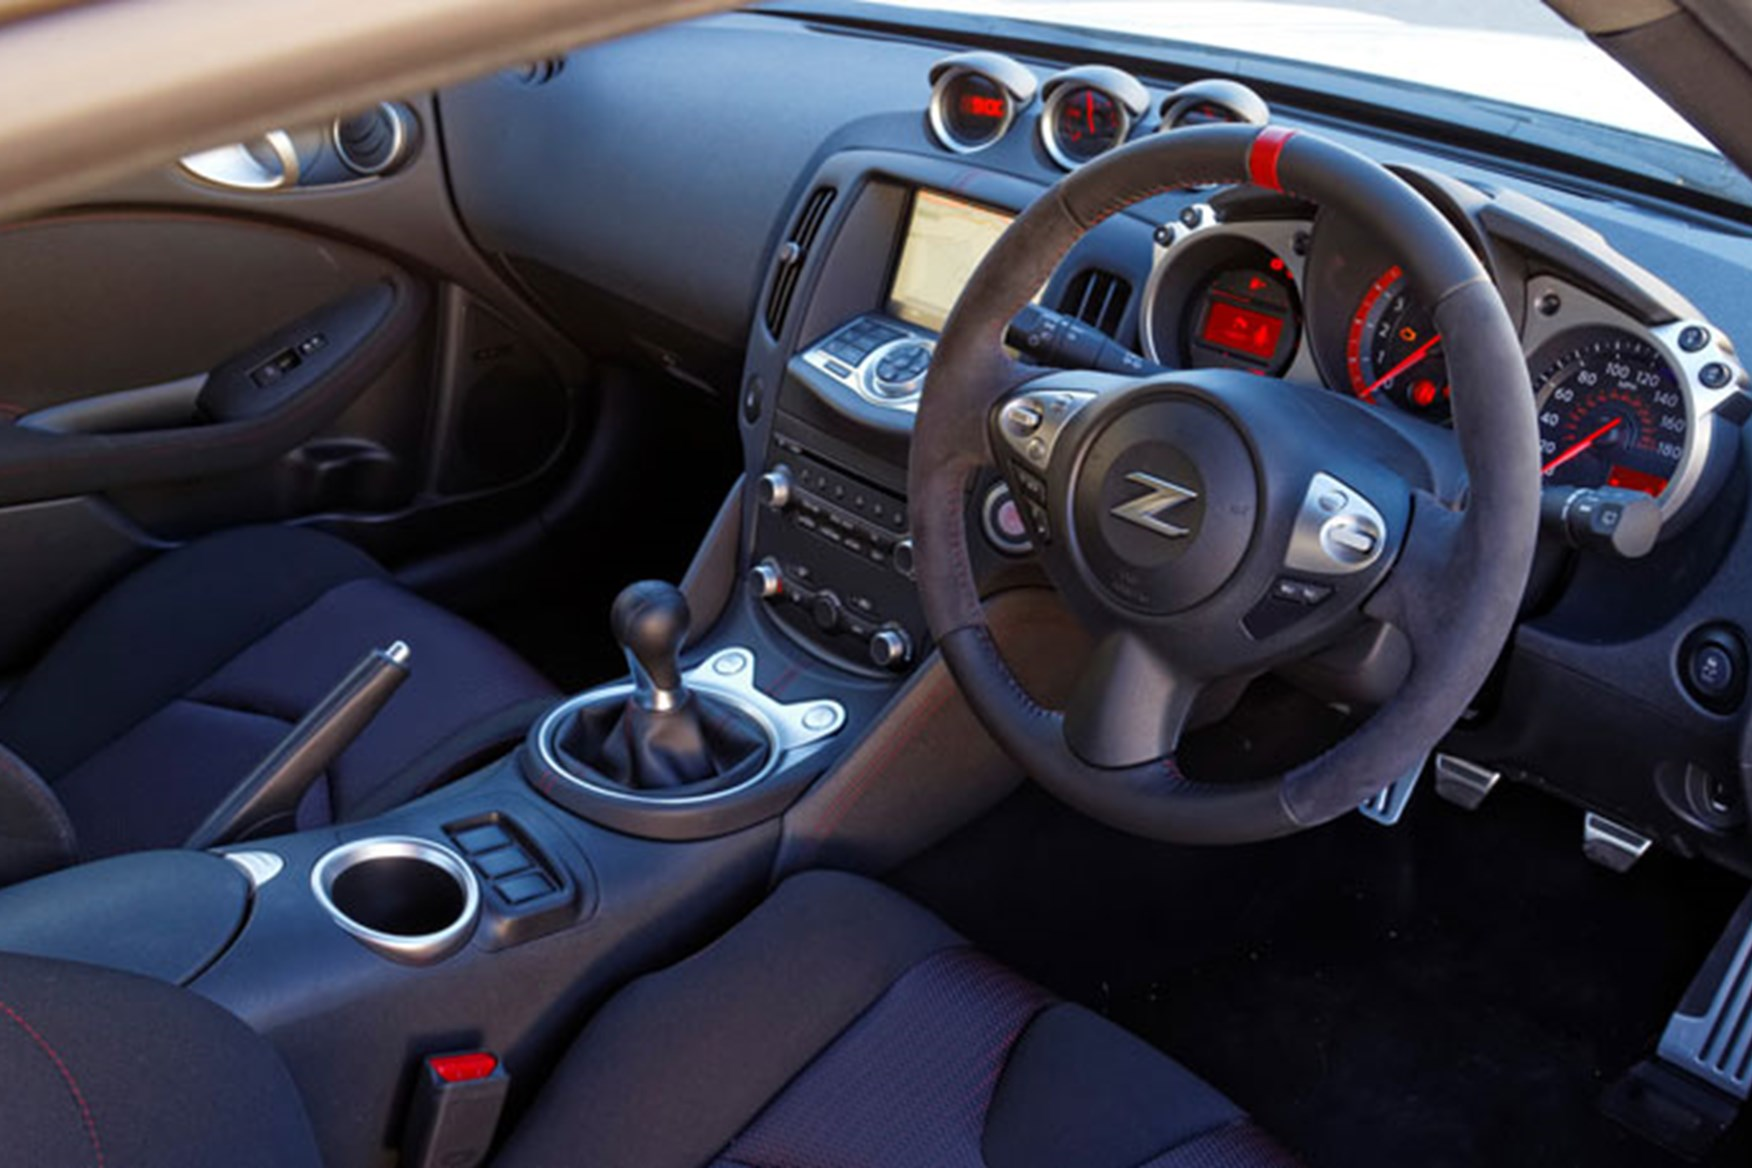 Superb Nissan Slashes 370Z Price And Adds Hot Nismo Model For 2013 | CAR Magazine